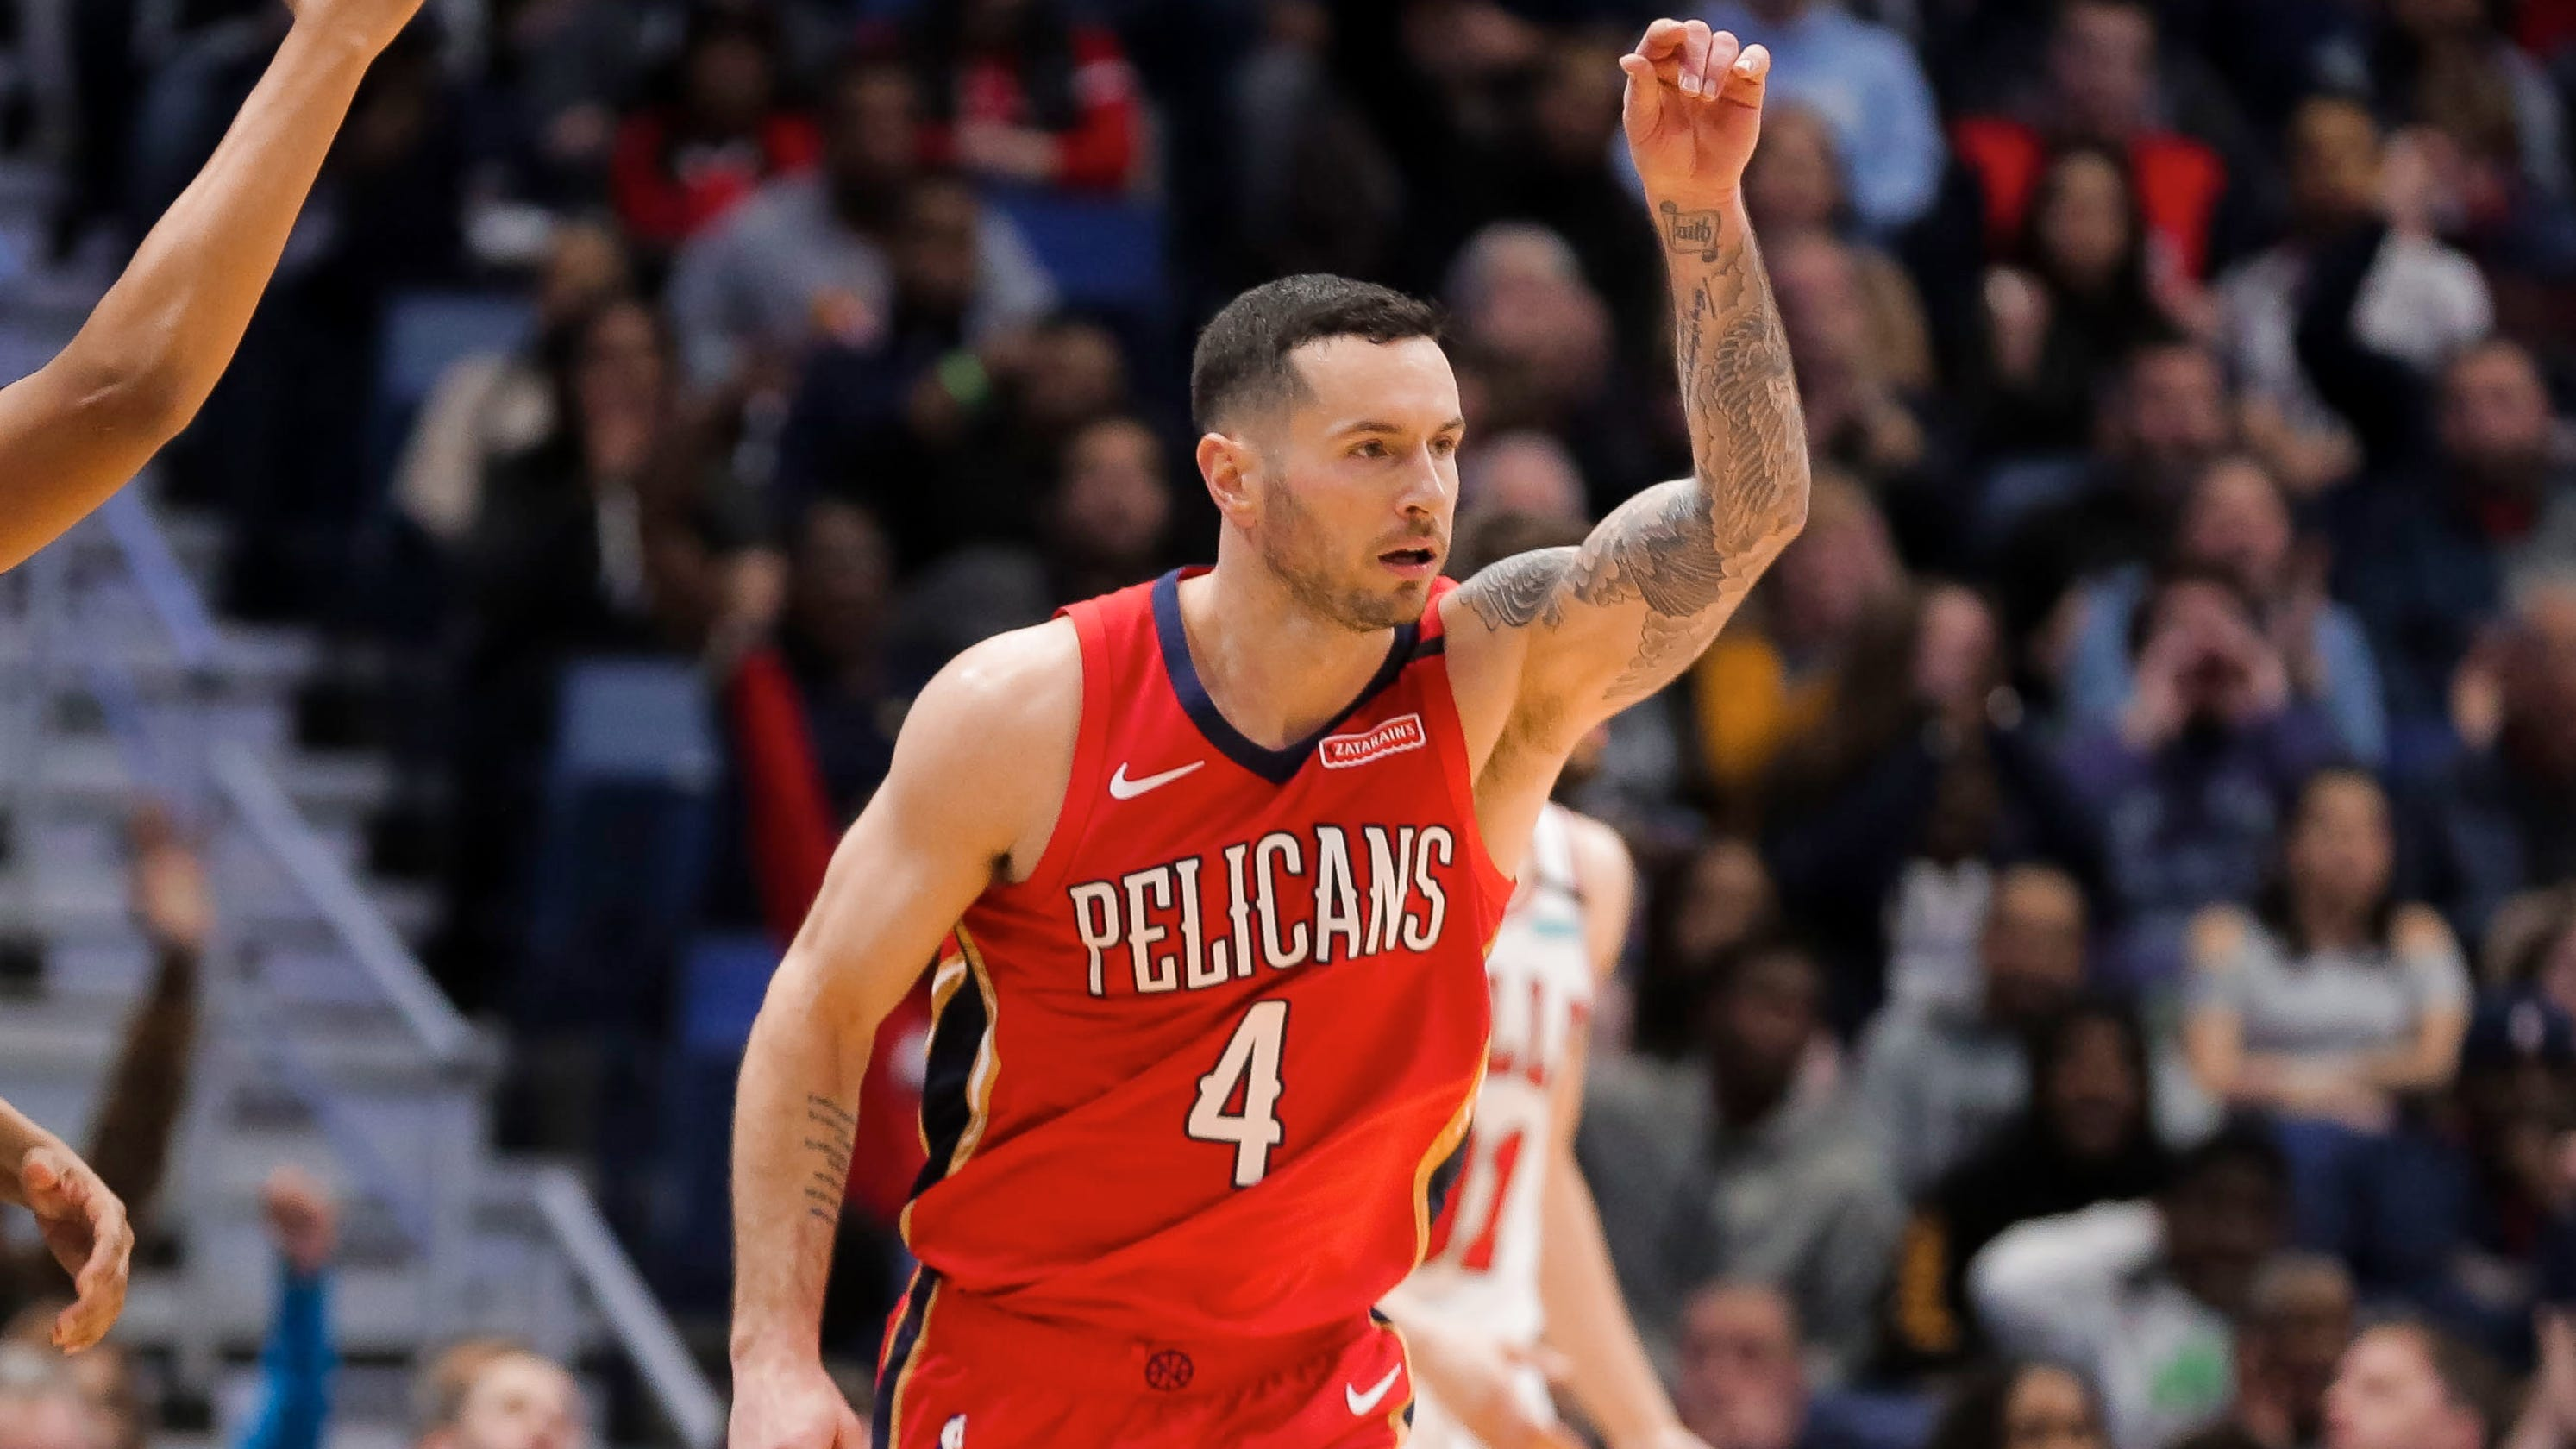 'How did I end up with this?' Pelicans' JJ Redick gets sarcastic about reunion with coach Stan Van Gundy